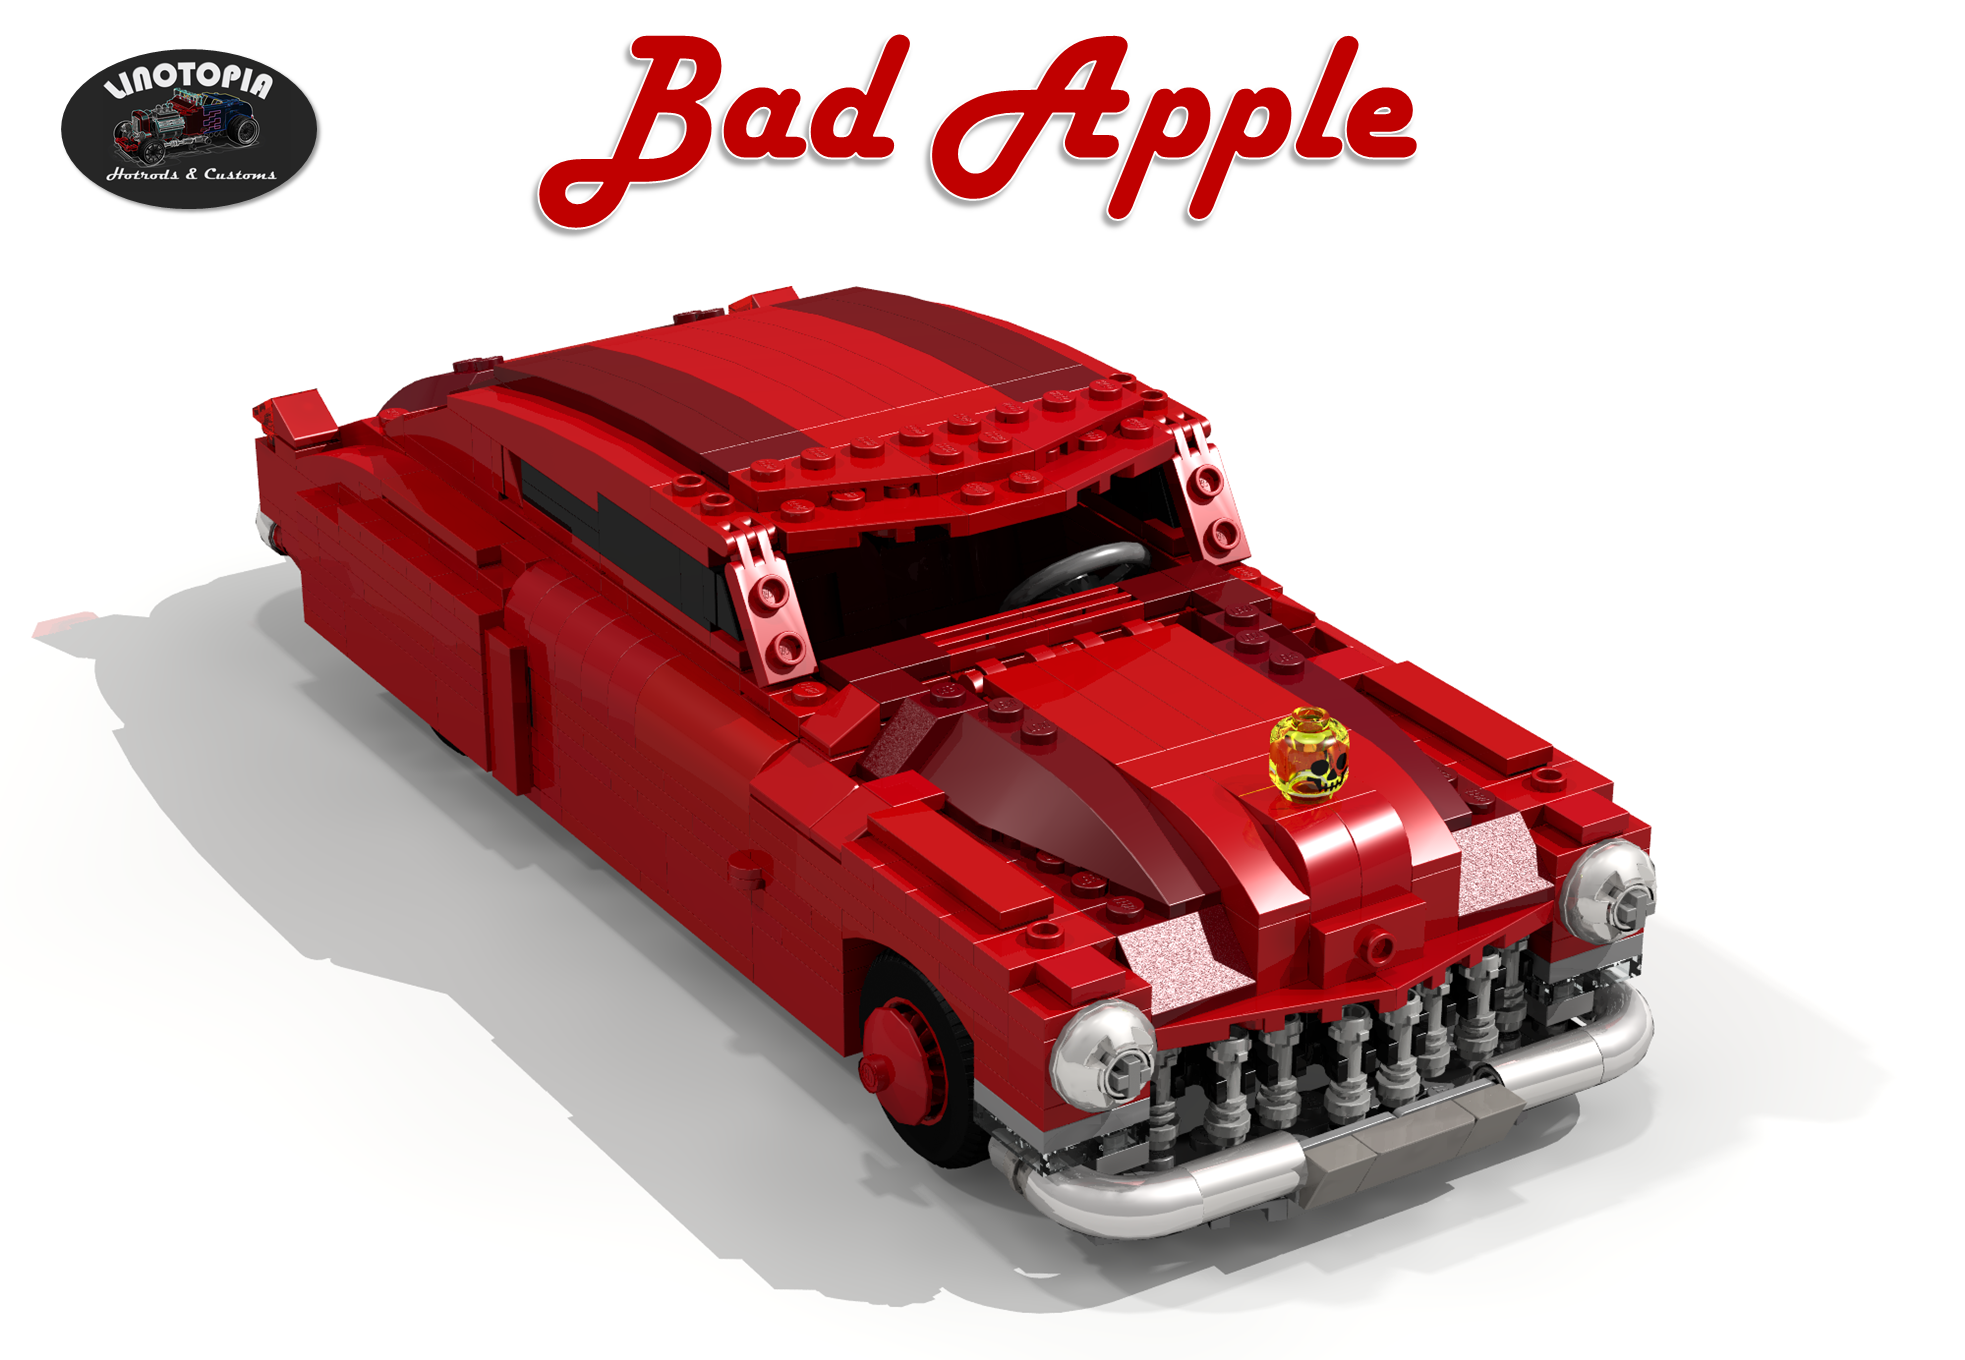 1949_linotopia_bad_apple_custom_cadillac.png